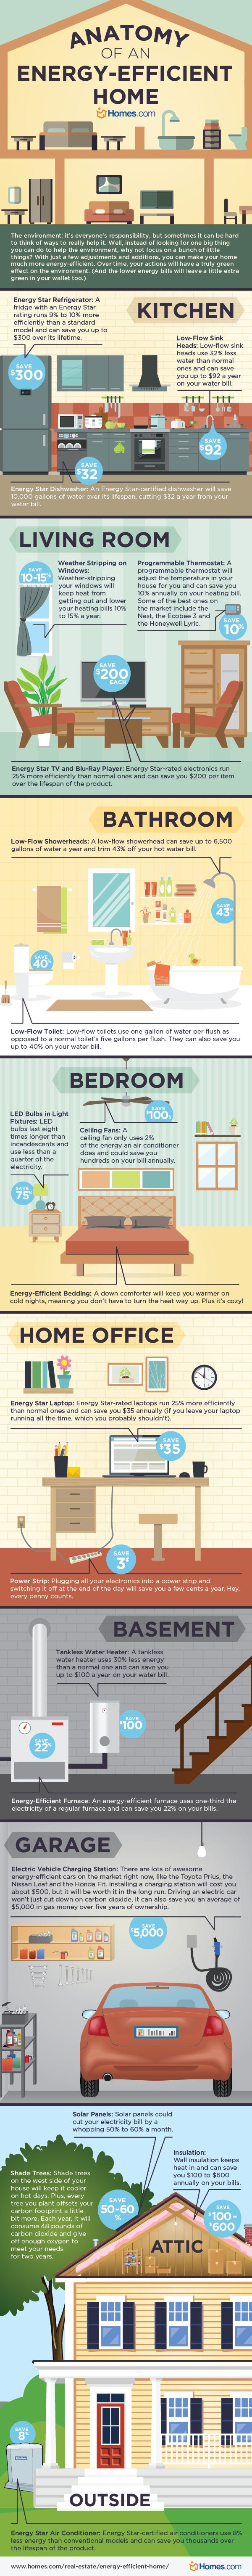 best 25 energy efficient homes ideas on pinterest energy thanks to homes com for using our content to make this great infographic on